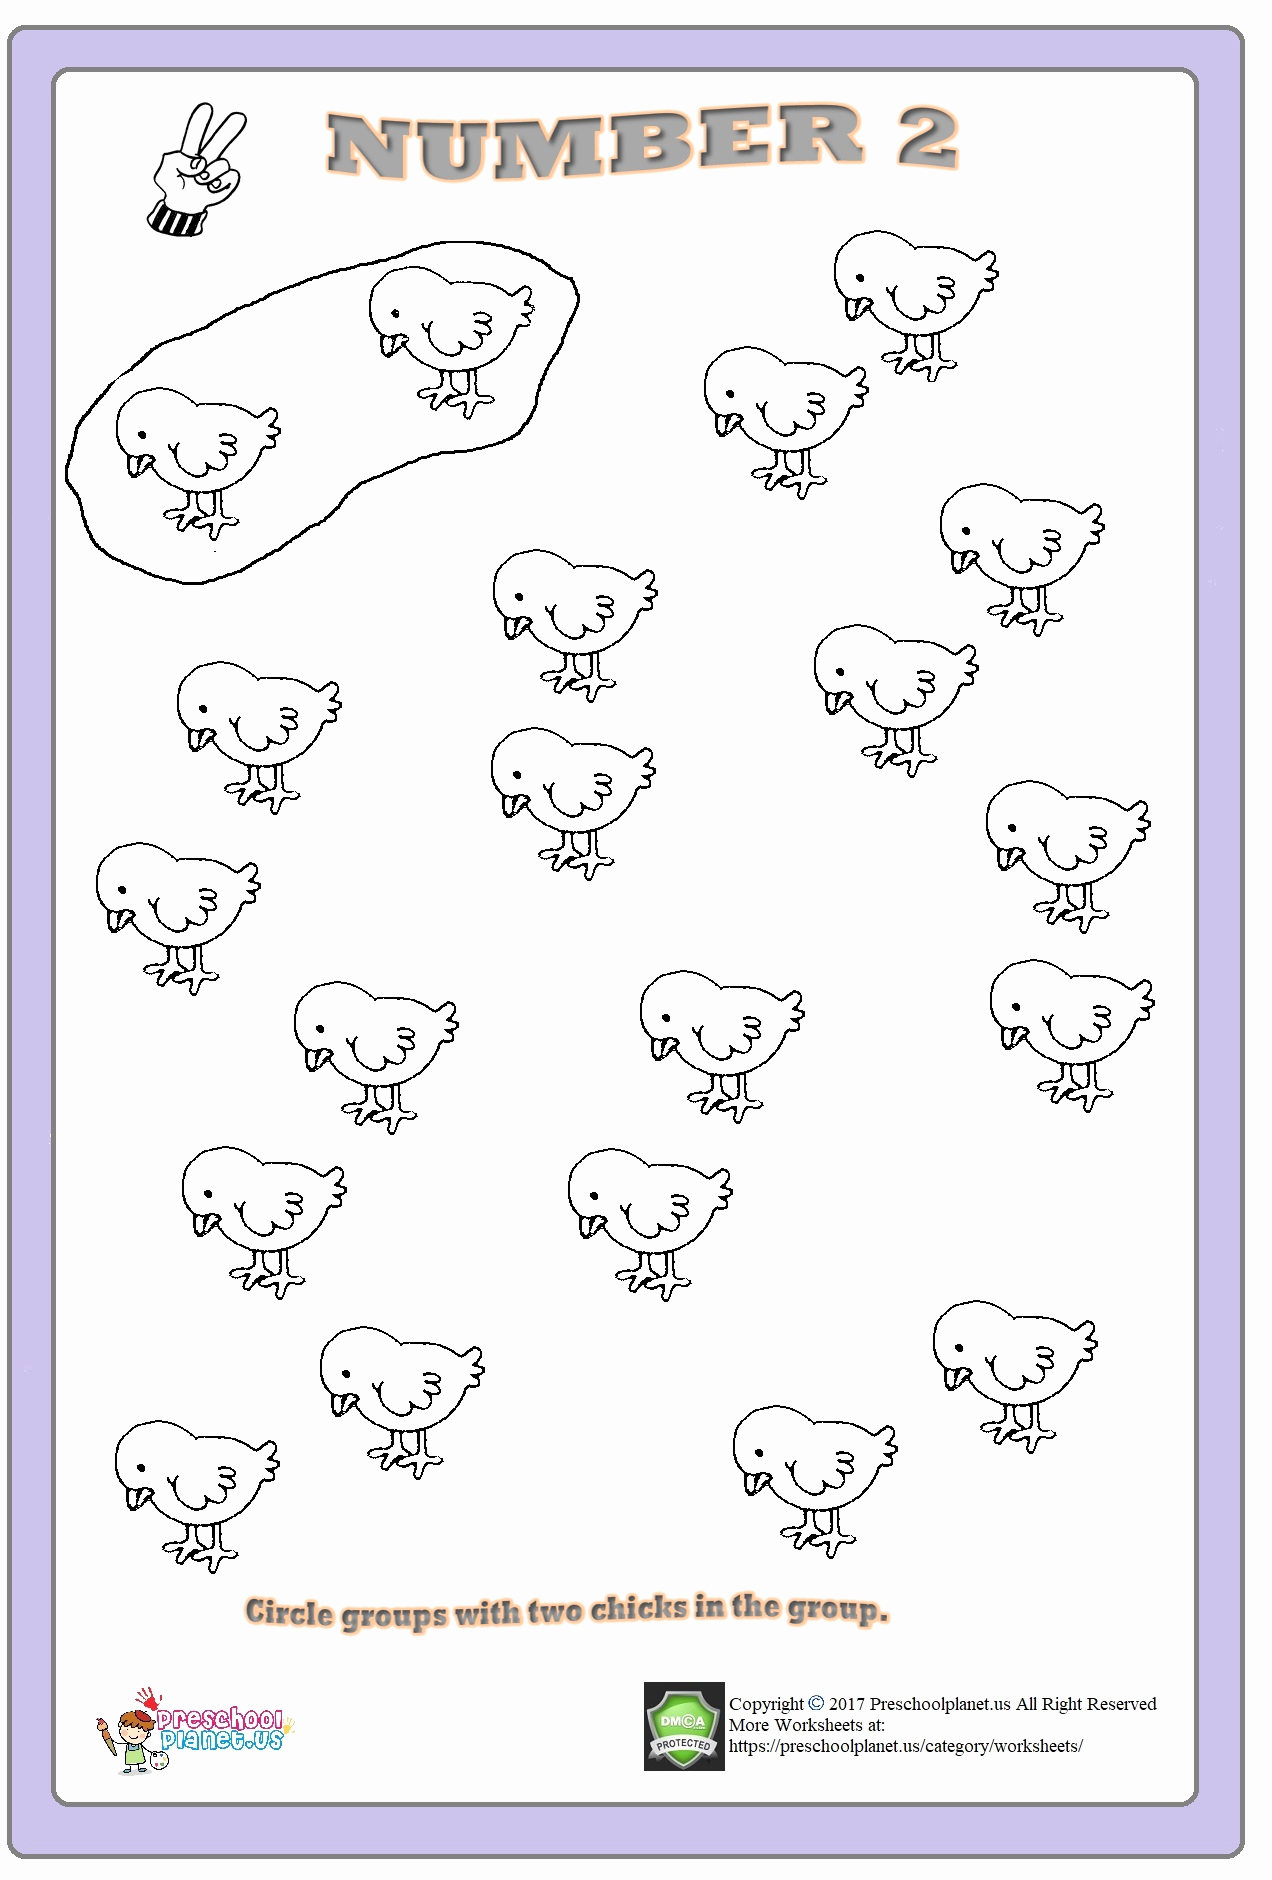 Number 2 Worksheets for Preschool Fresh Number 2 Worksheets for Preschool